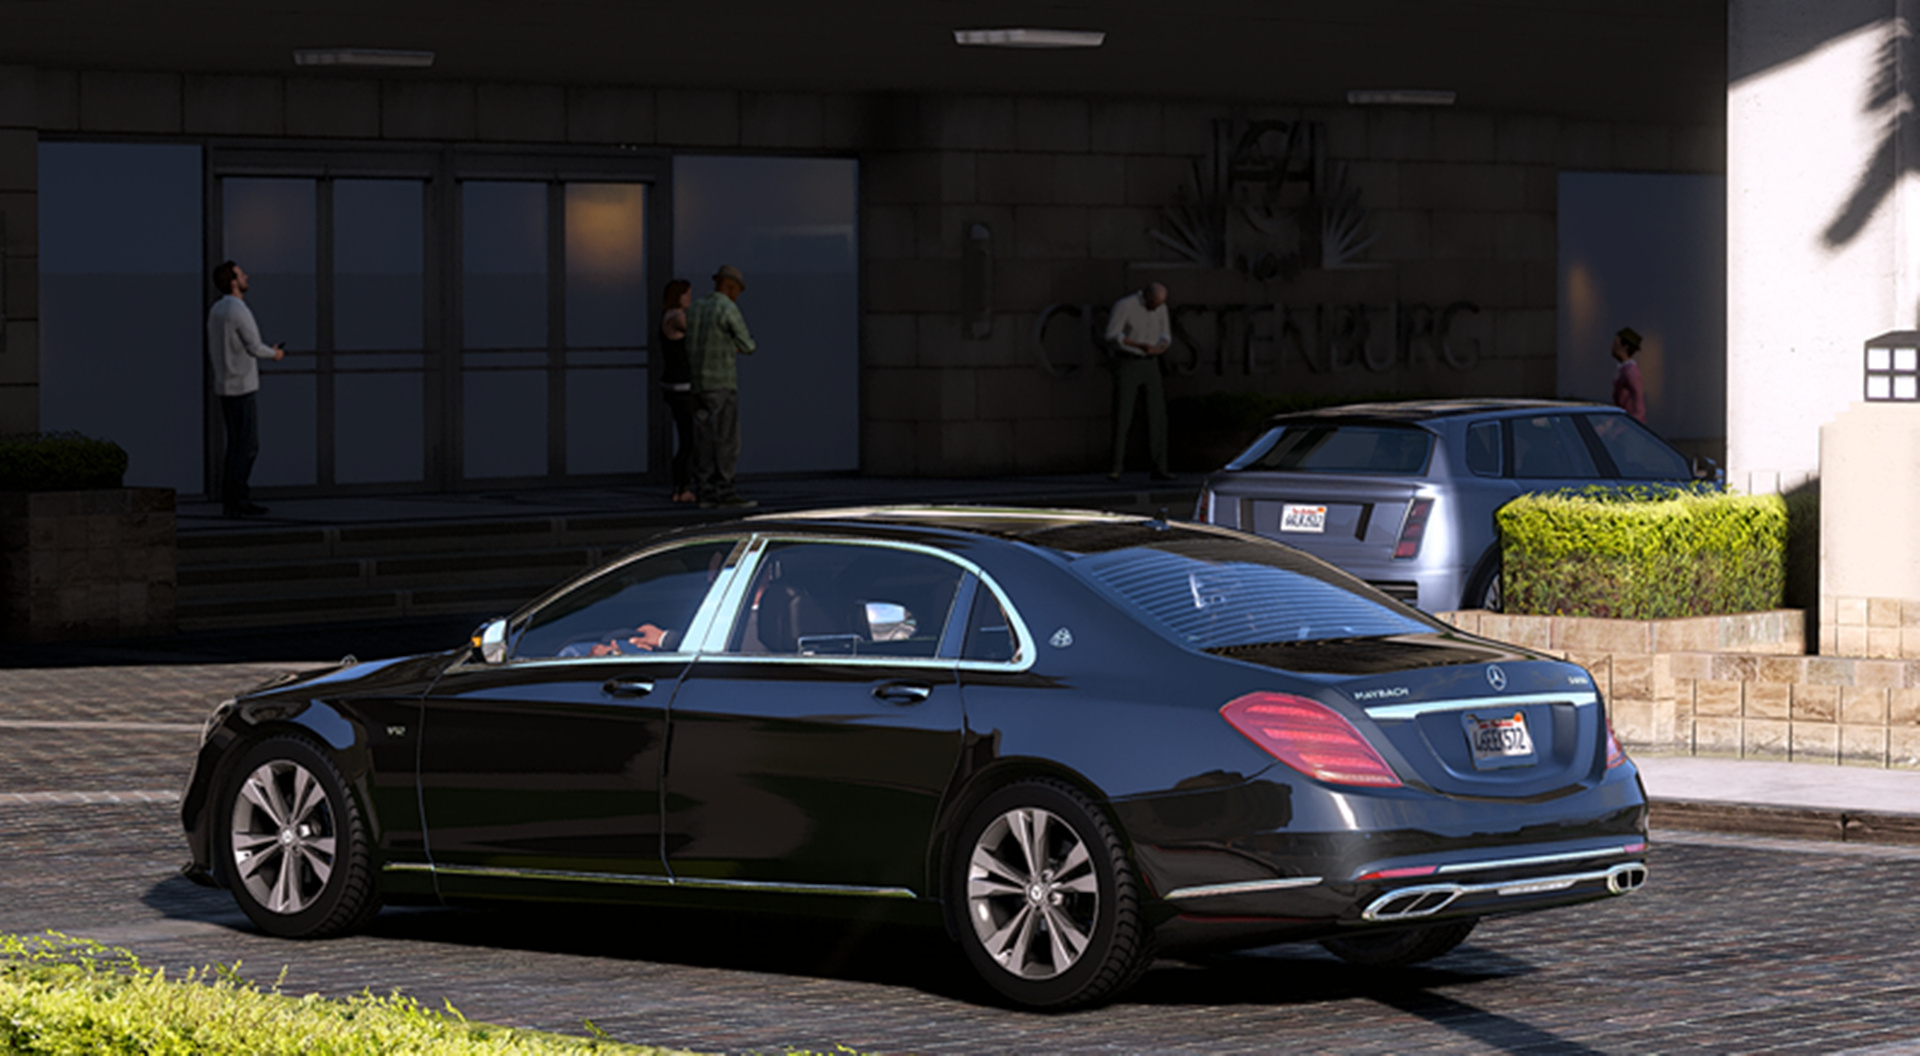 2018 Mb Maybach S650 Gta5 Mods Com